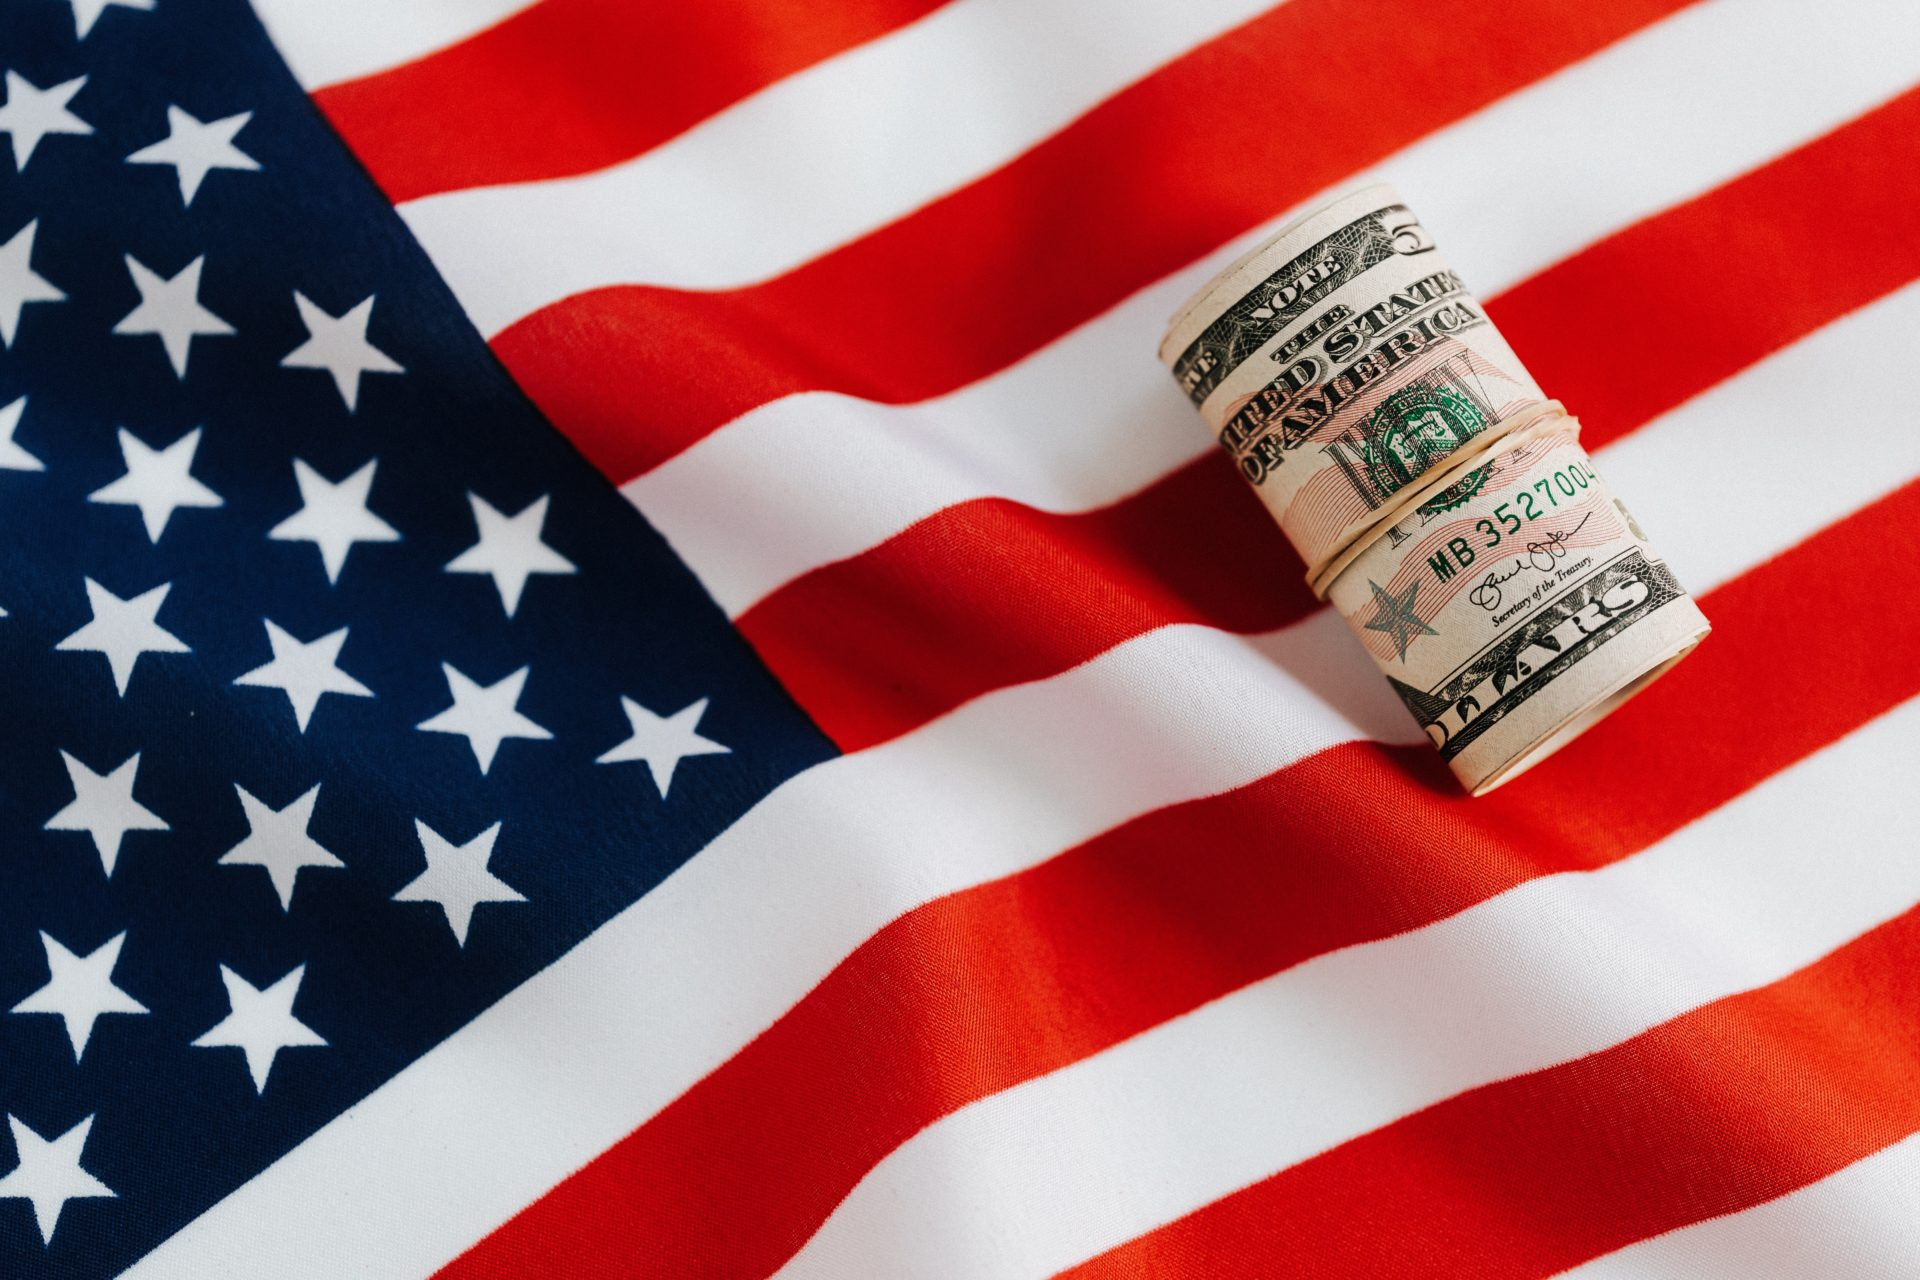 What US states are payday loans legal in?